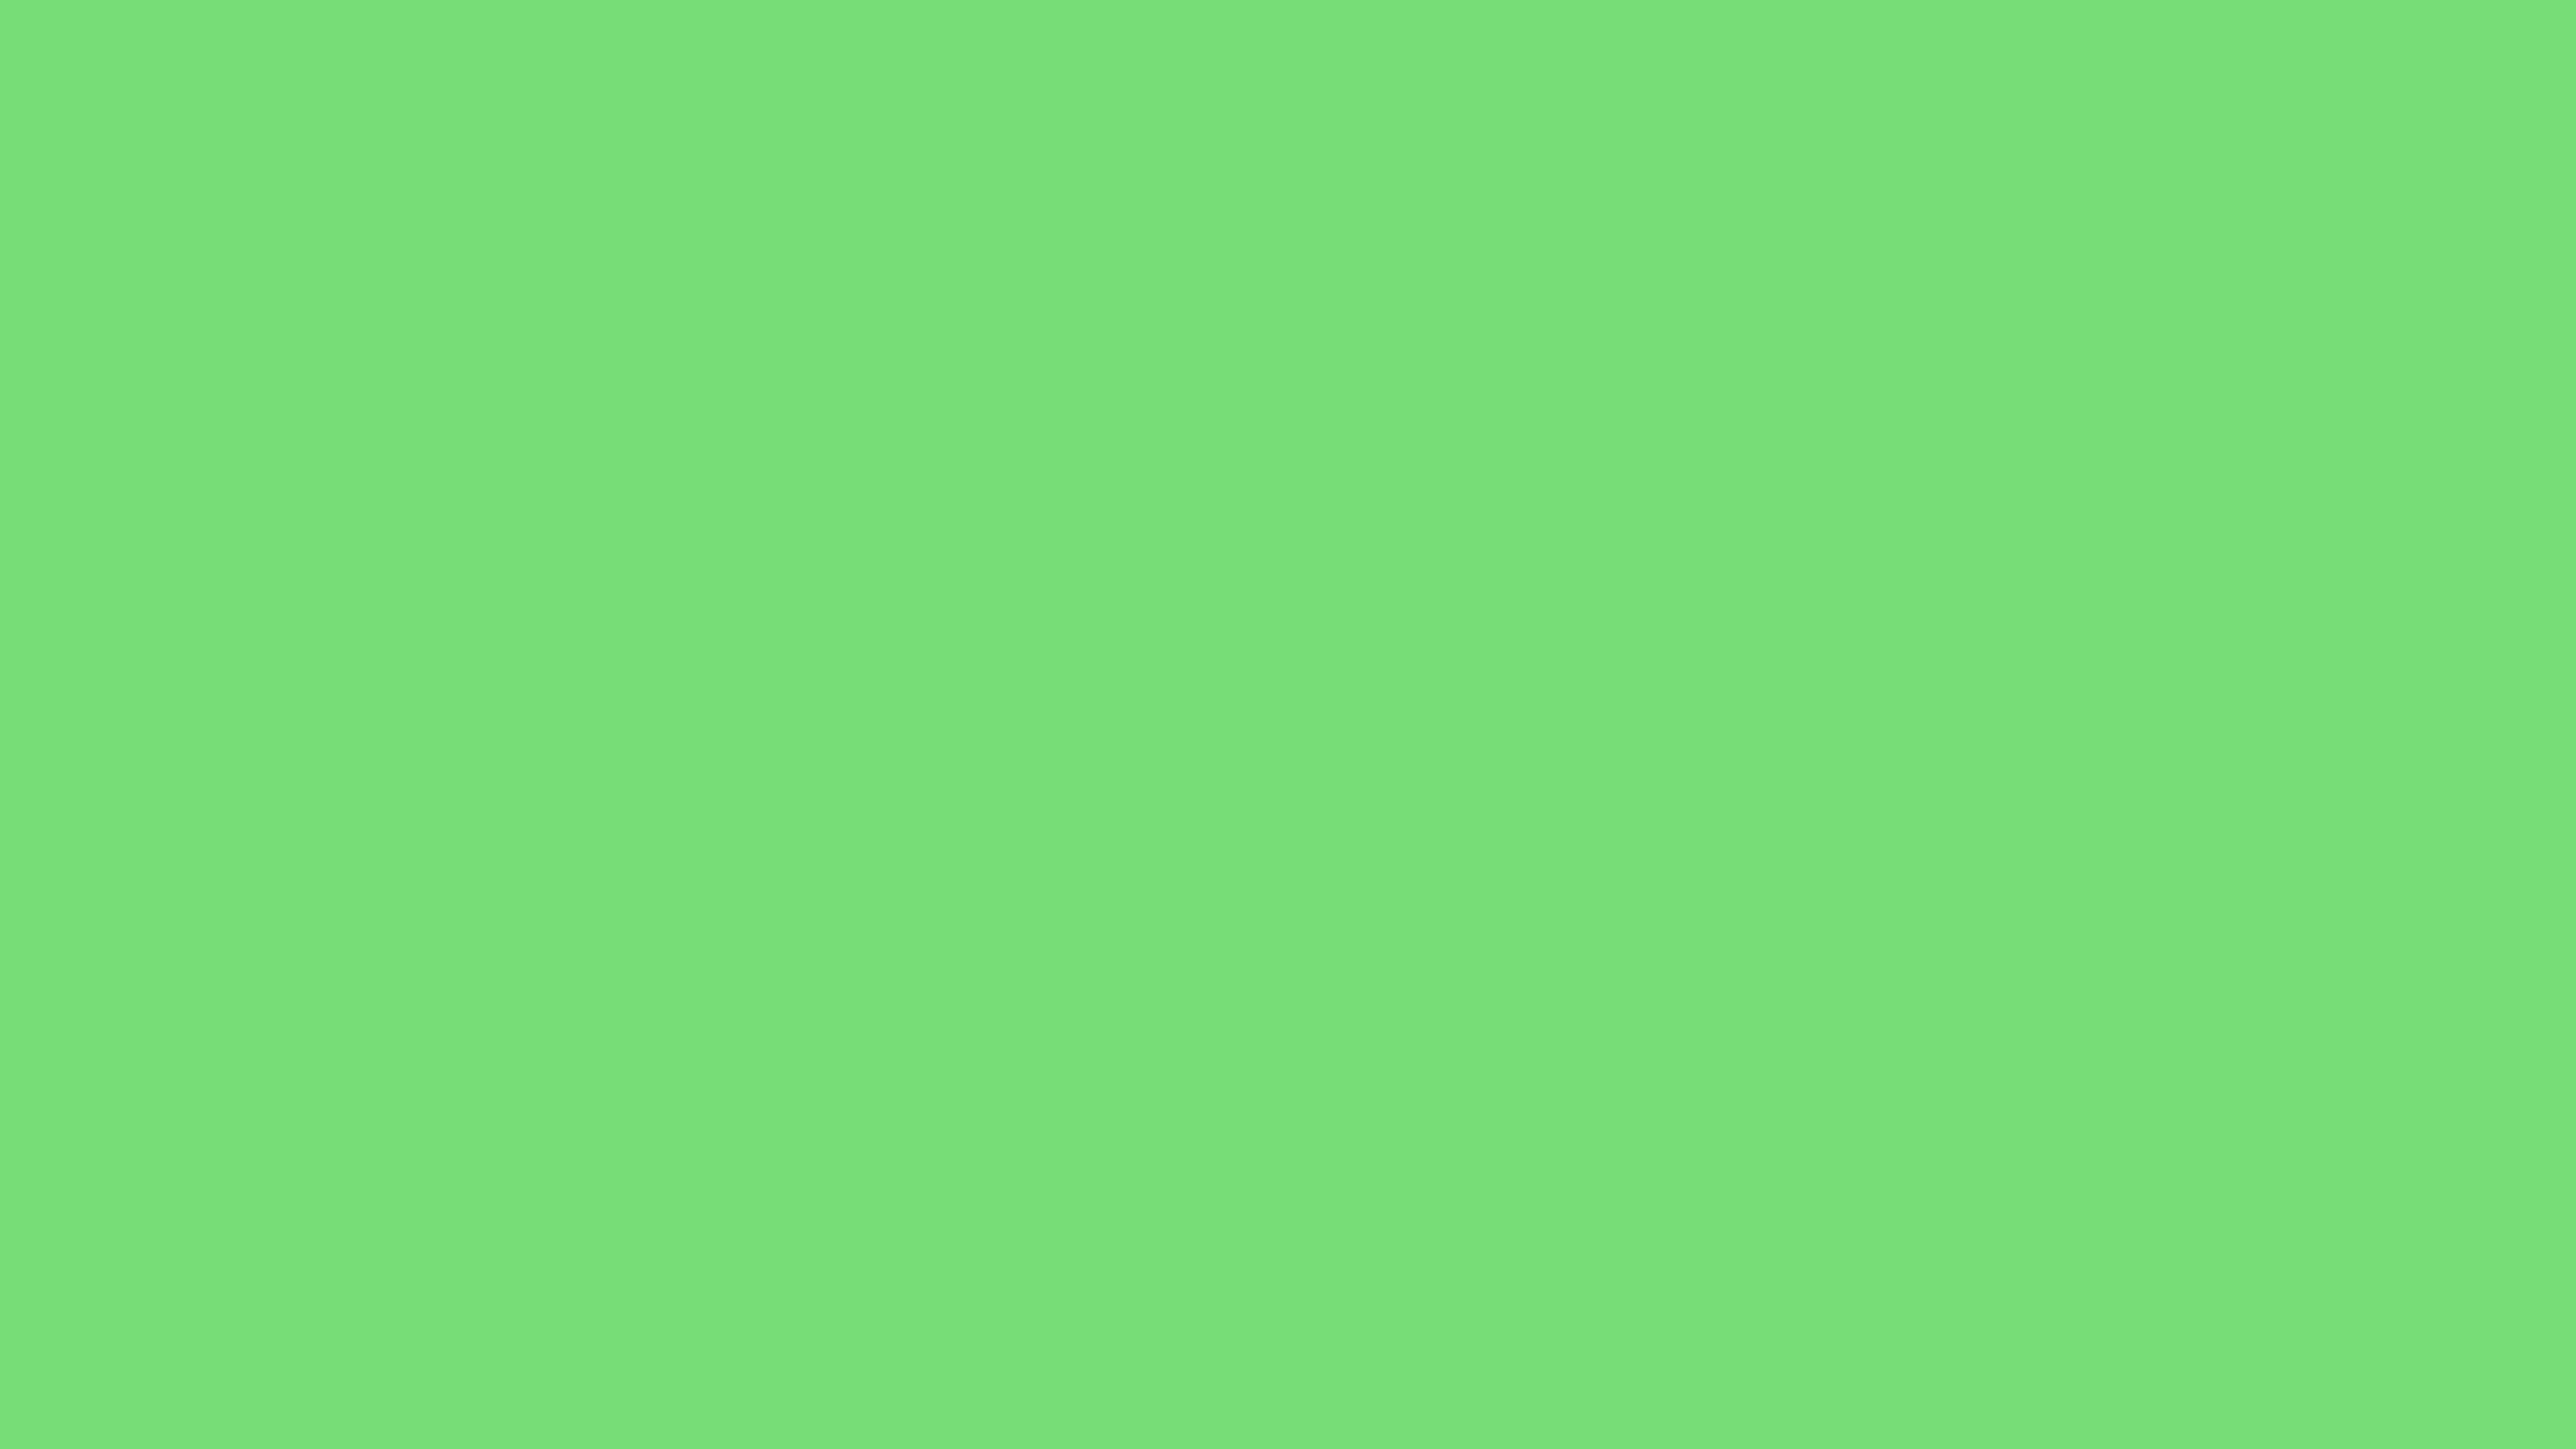 5120x2880 Pastel Green Solid Color Background